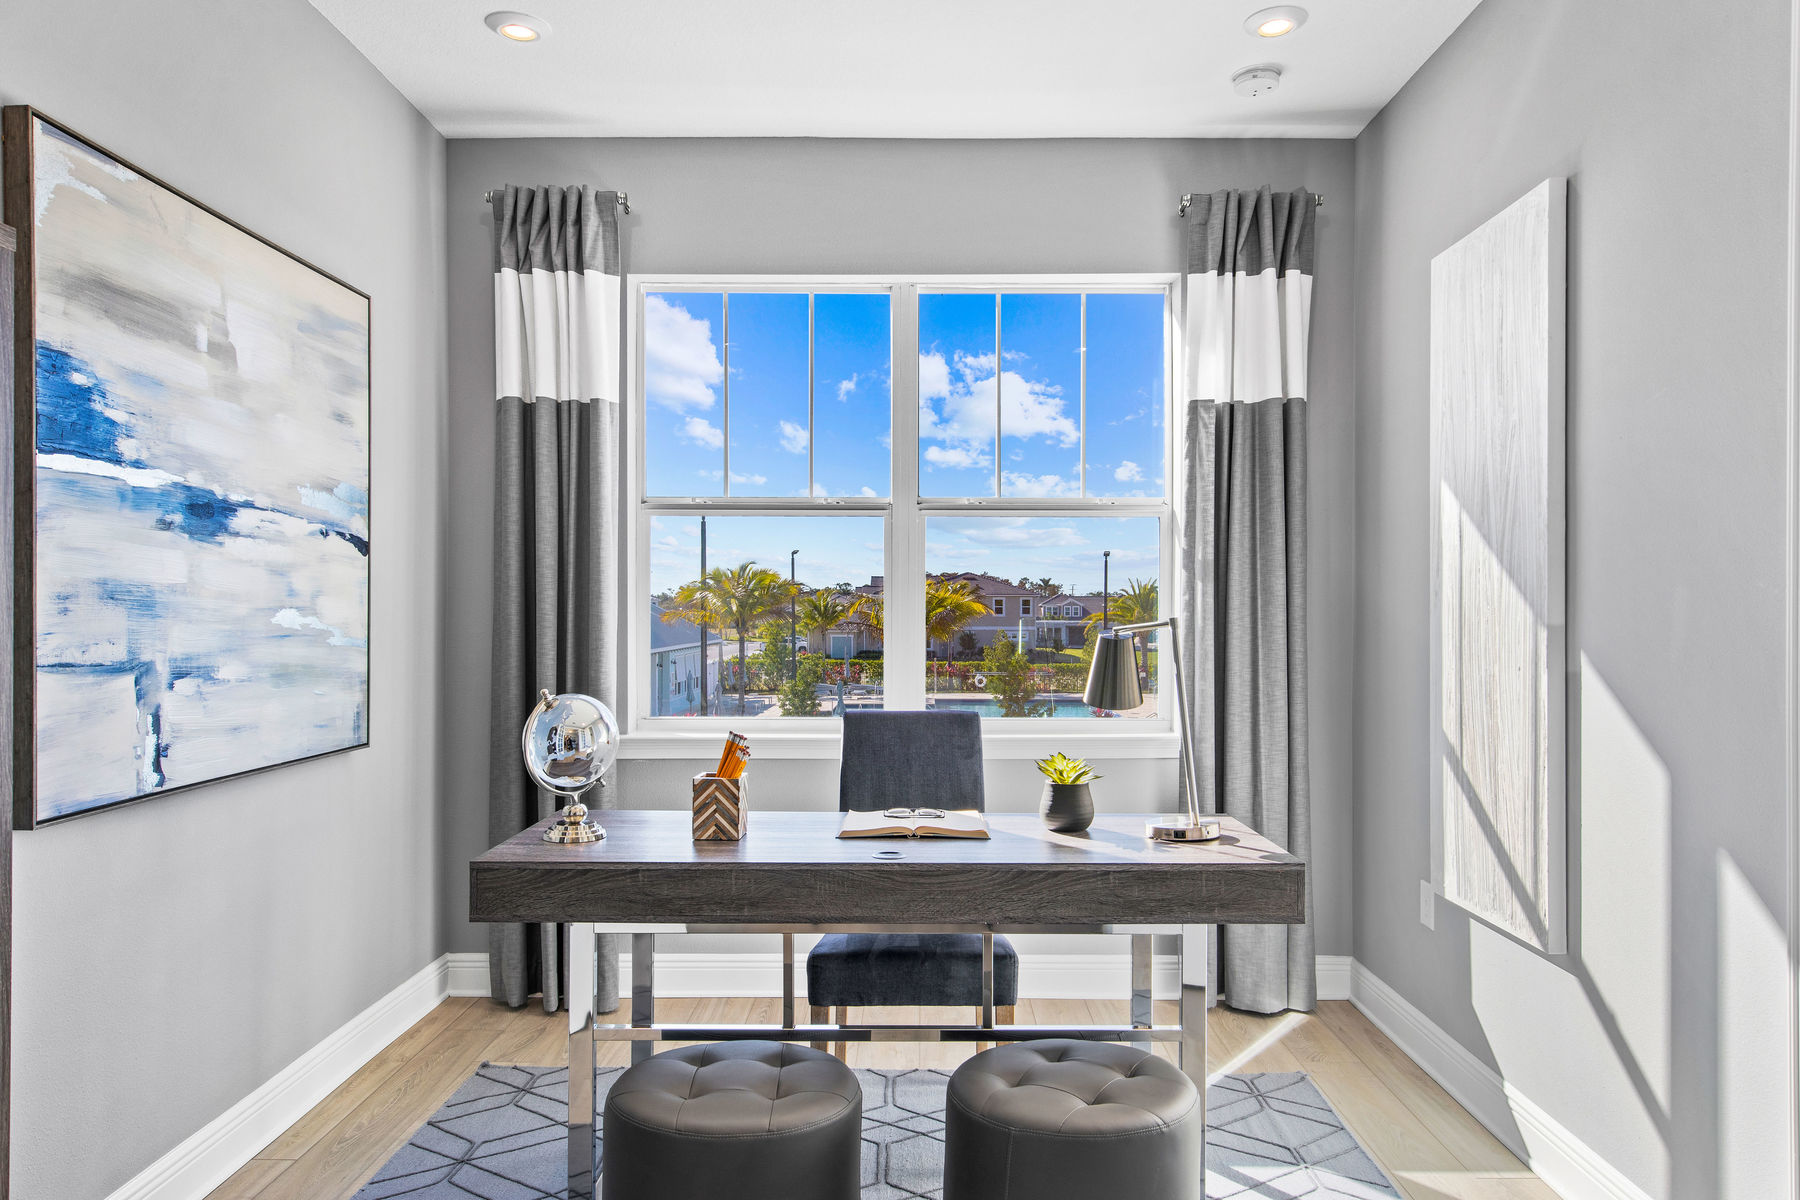 Oceangrove Plan Study Room at Arboretum in Naples Florida by Mattamy Homes